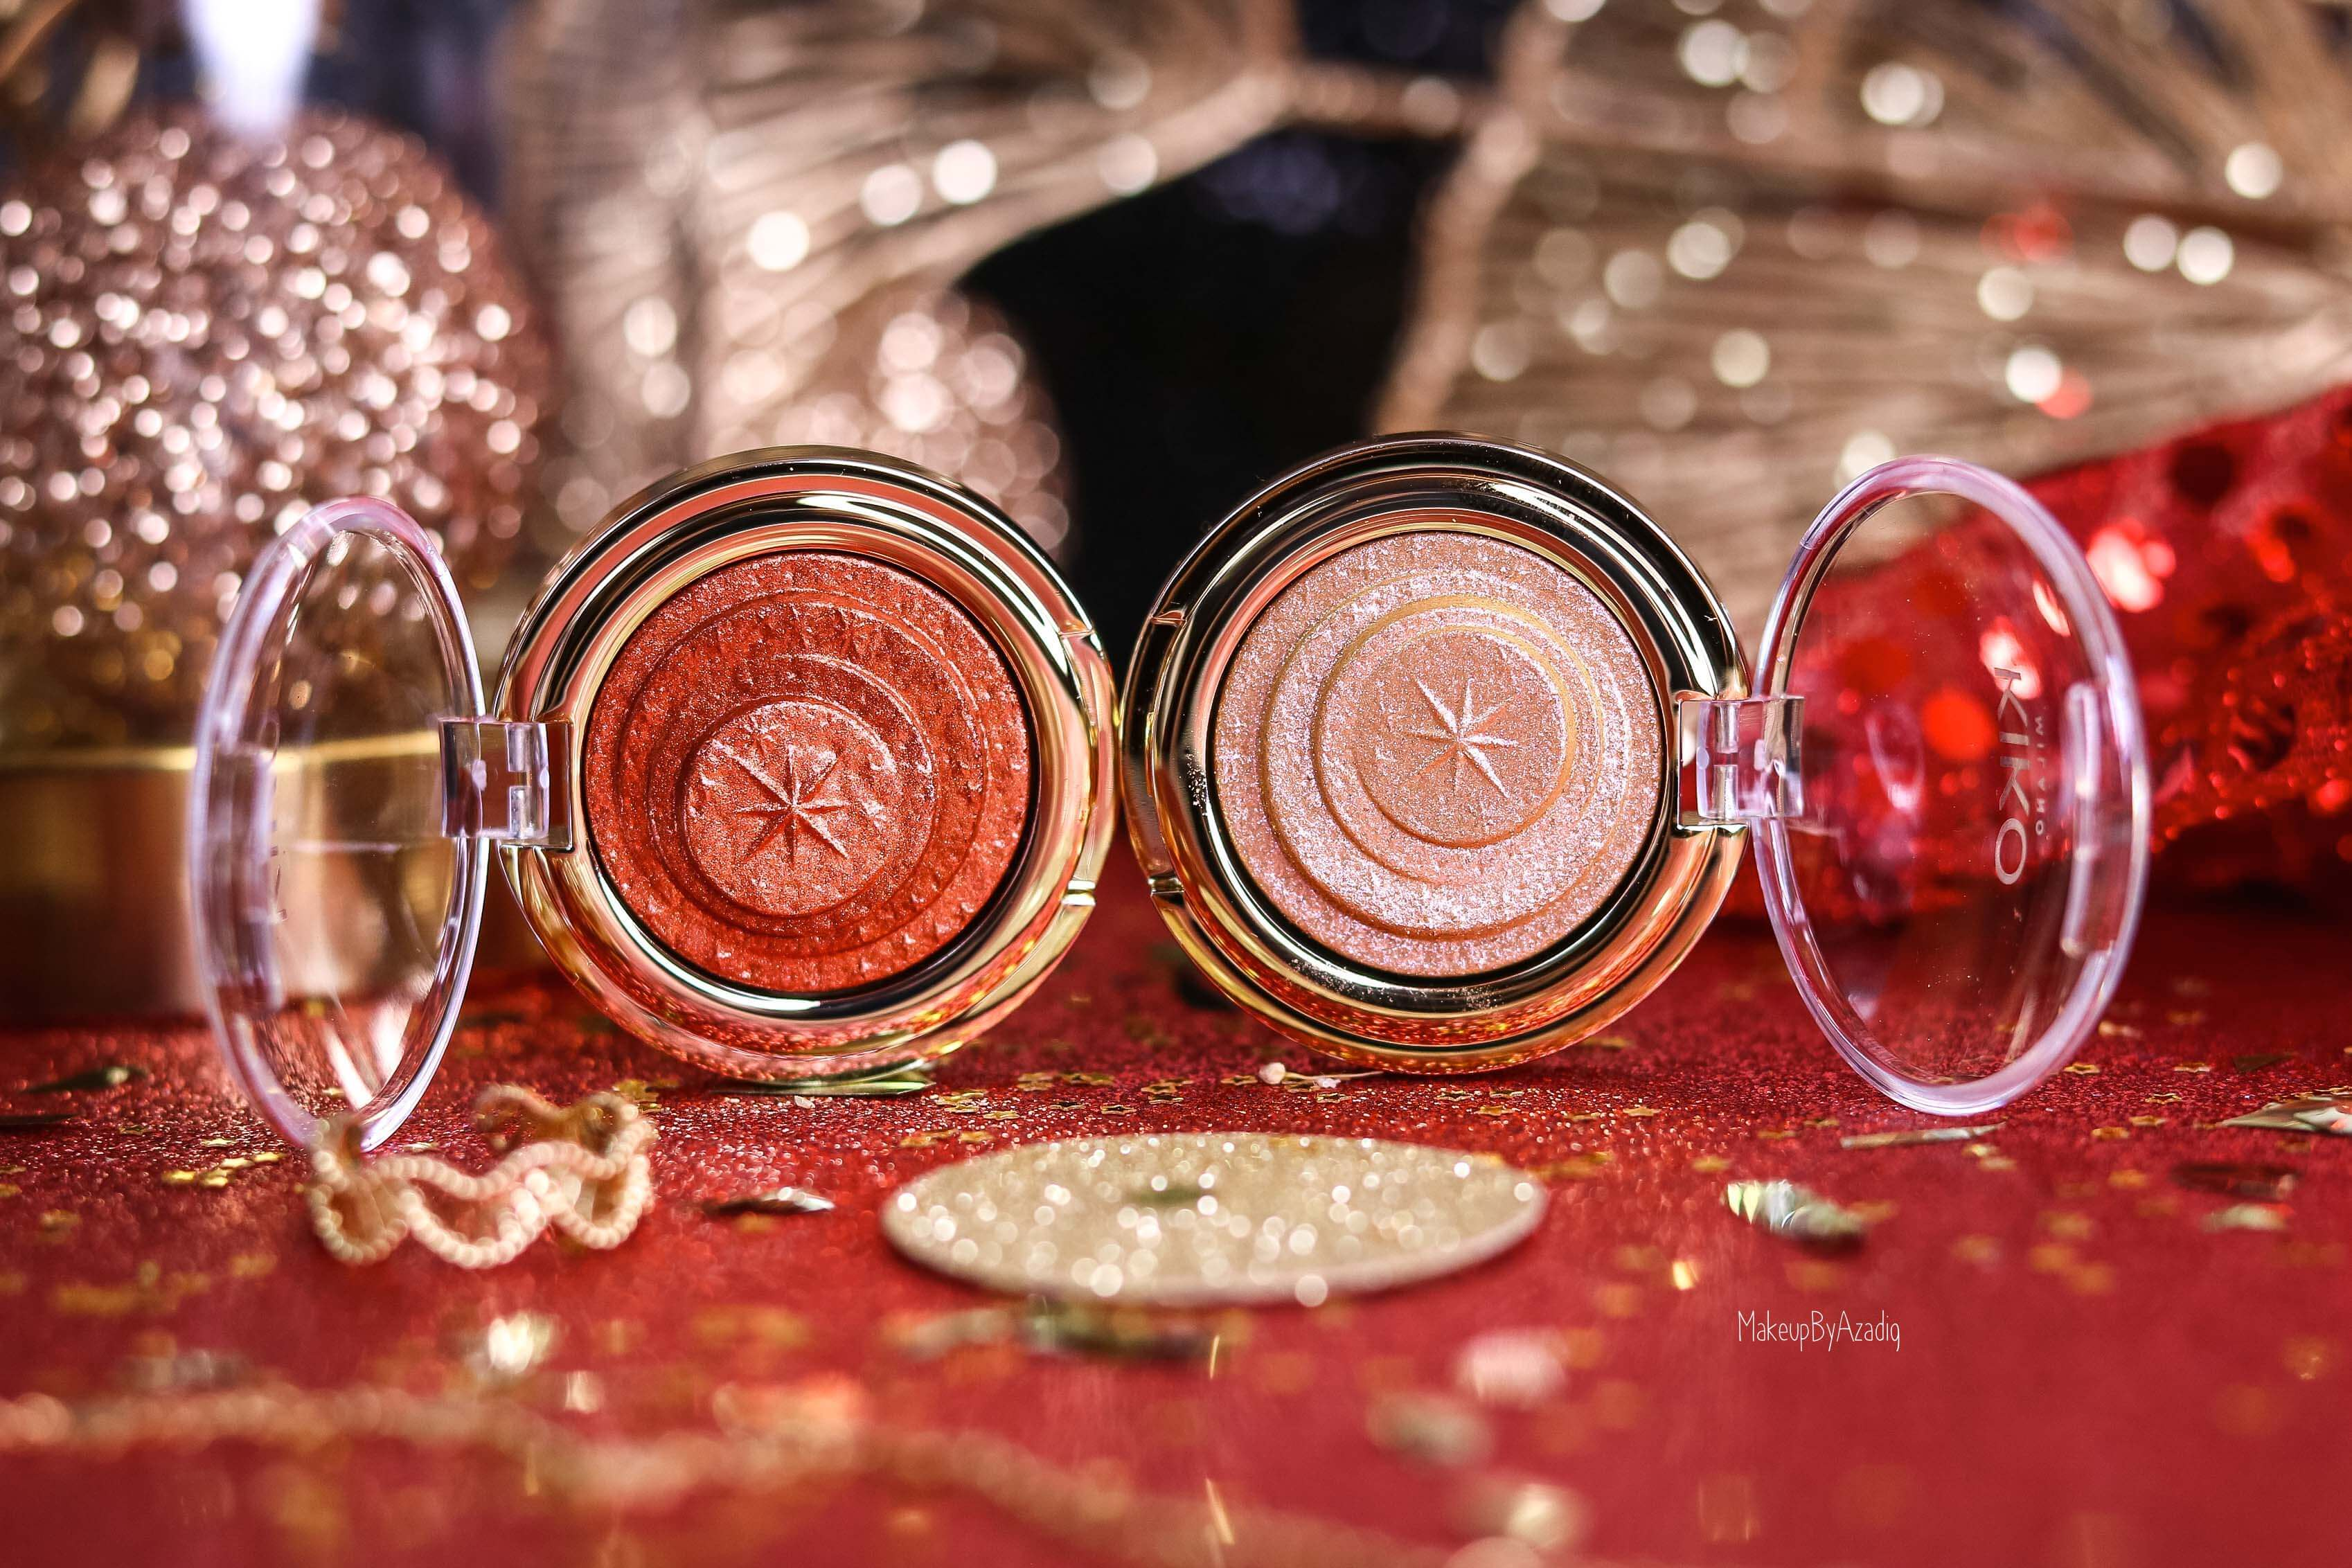 revue-collection-noel-kiko-milano-troyes-magical-holiday-rouge-levres-fard-paupieres-makeupbyazadig-avis-prix-swatch-paillete-2019-eyeshadows